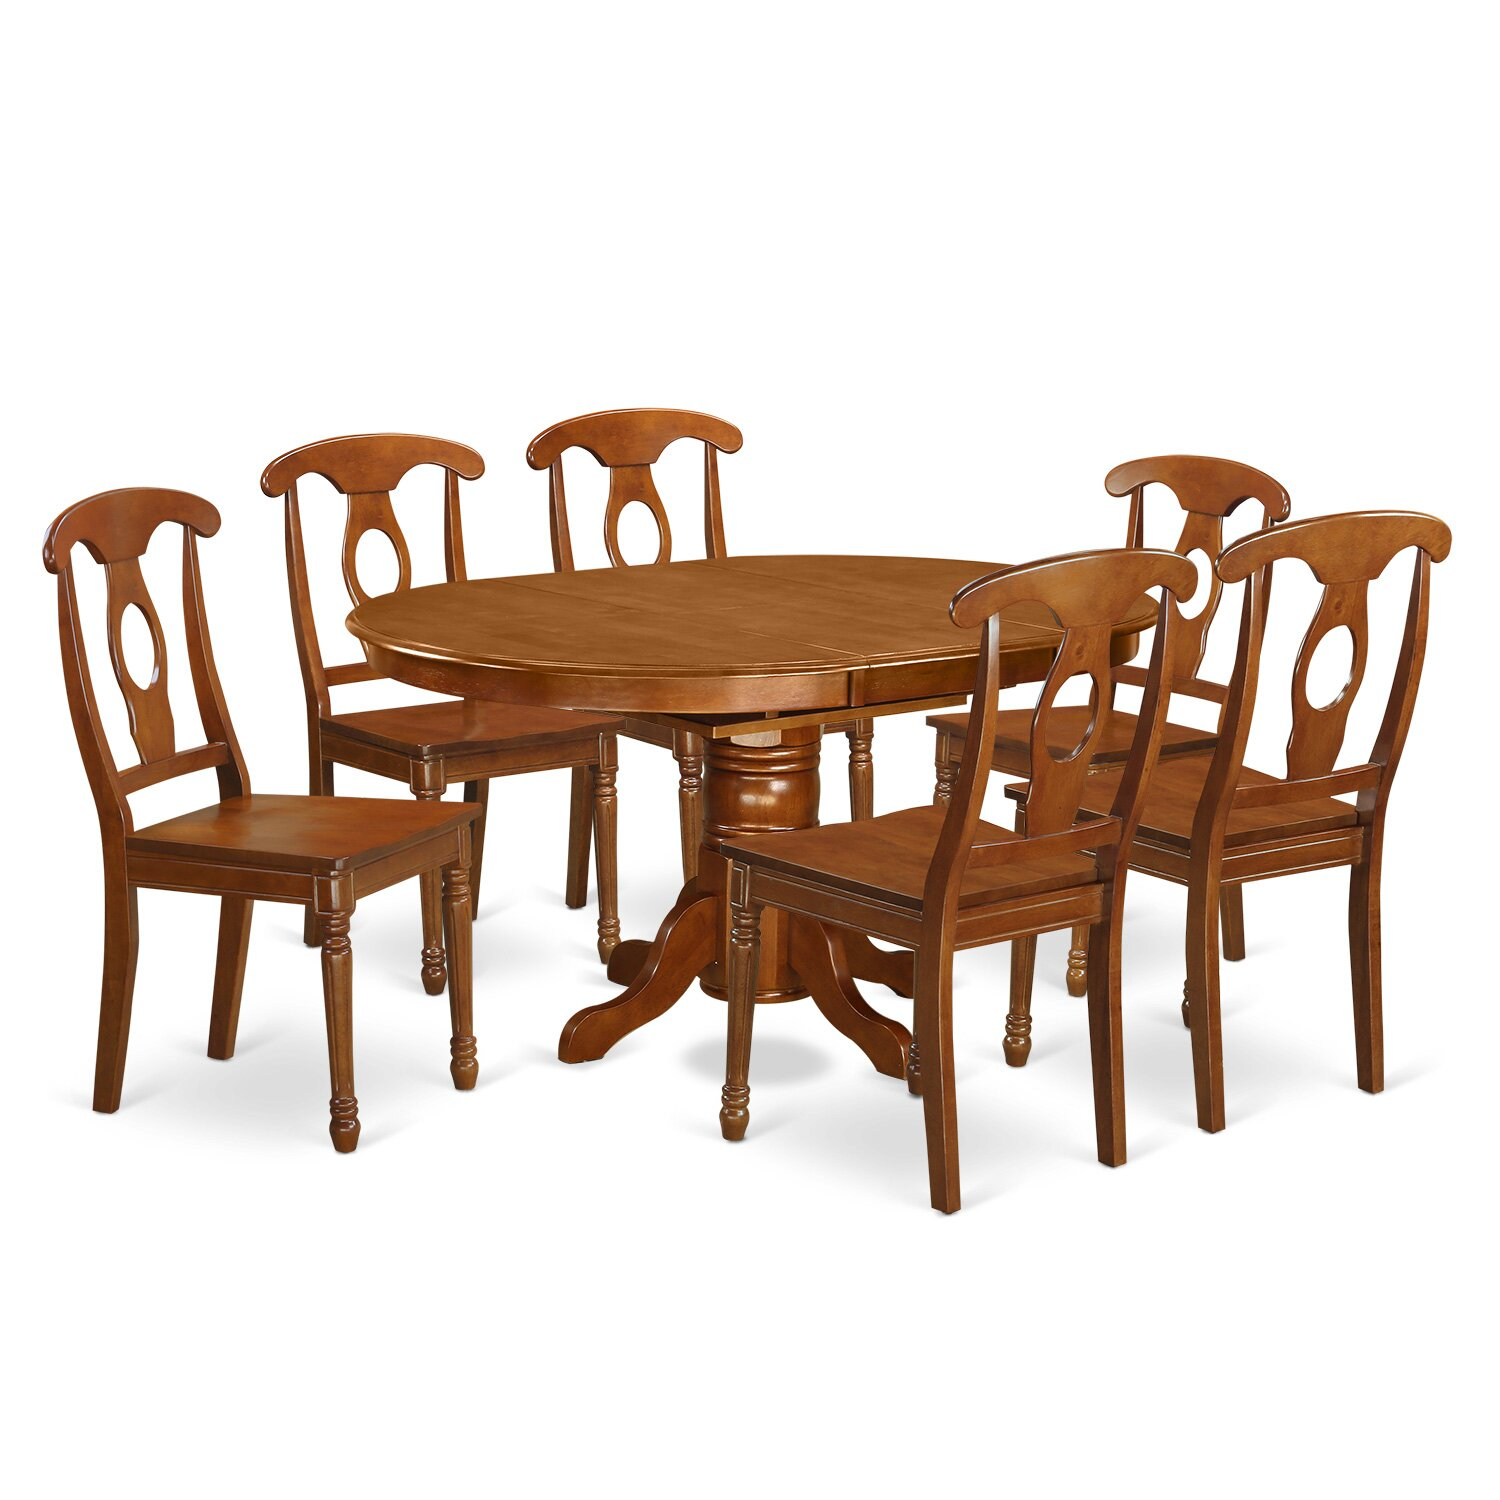 #783F1B Best Kitchen U0026 Dining Furniture 7 Piece Kitchen U0026 Dining Room Sets  Logan Dining